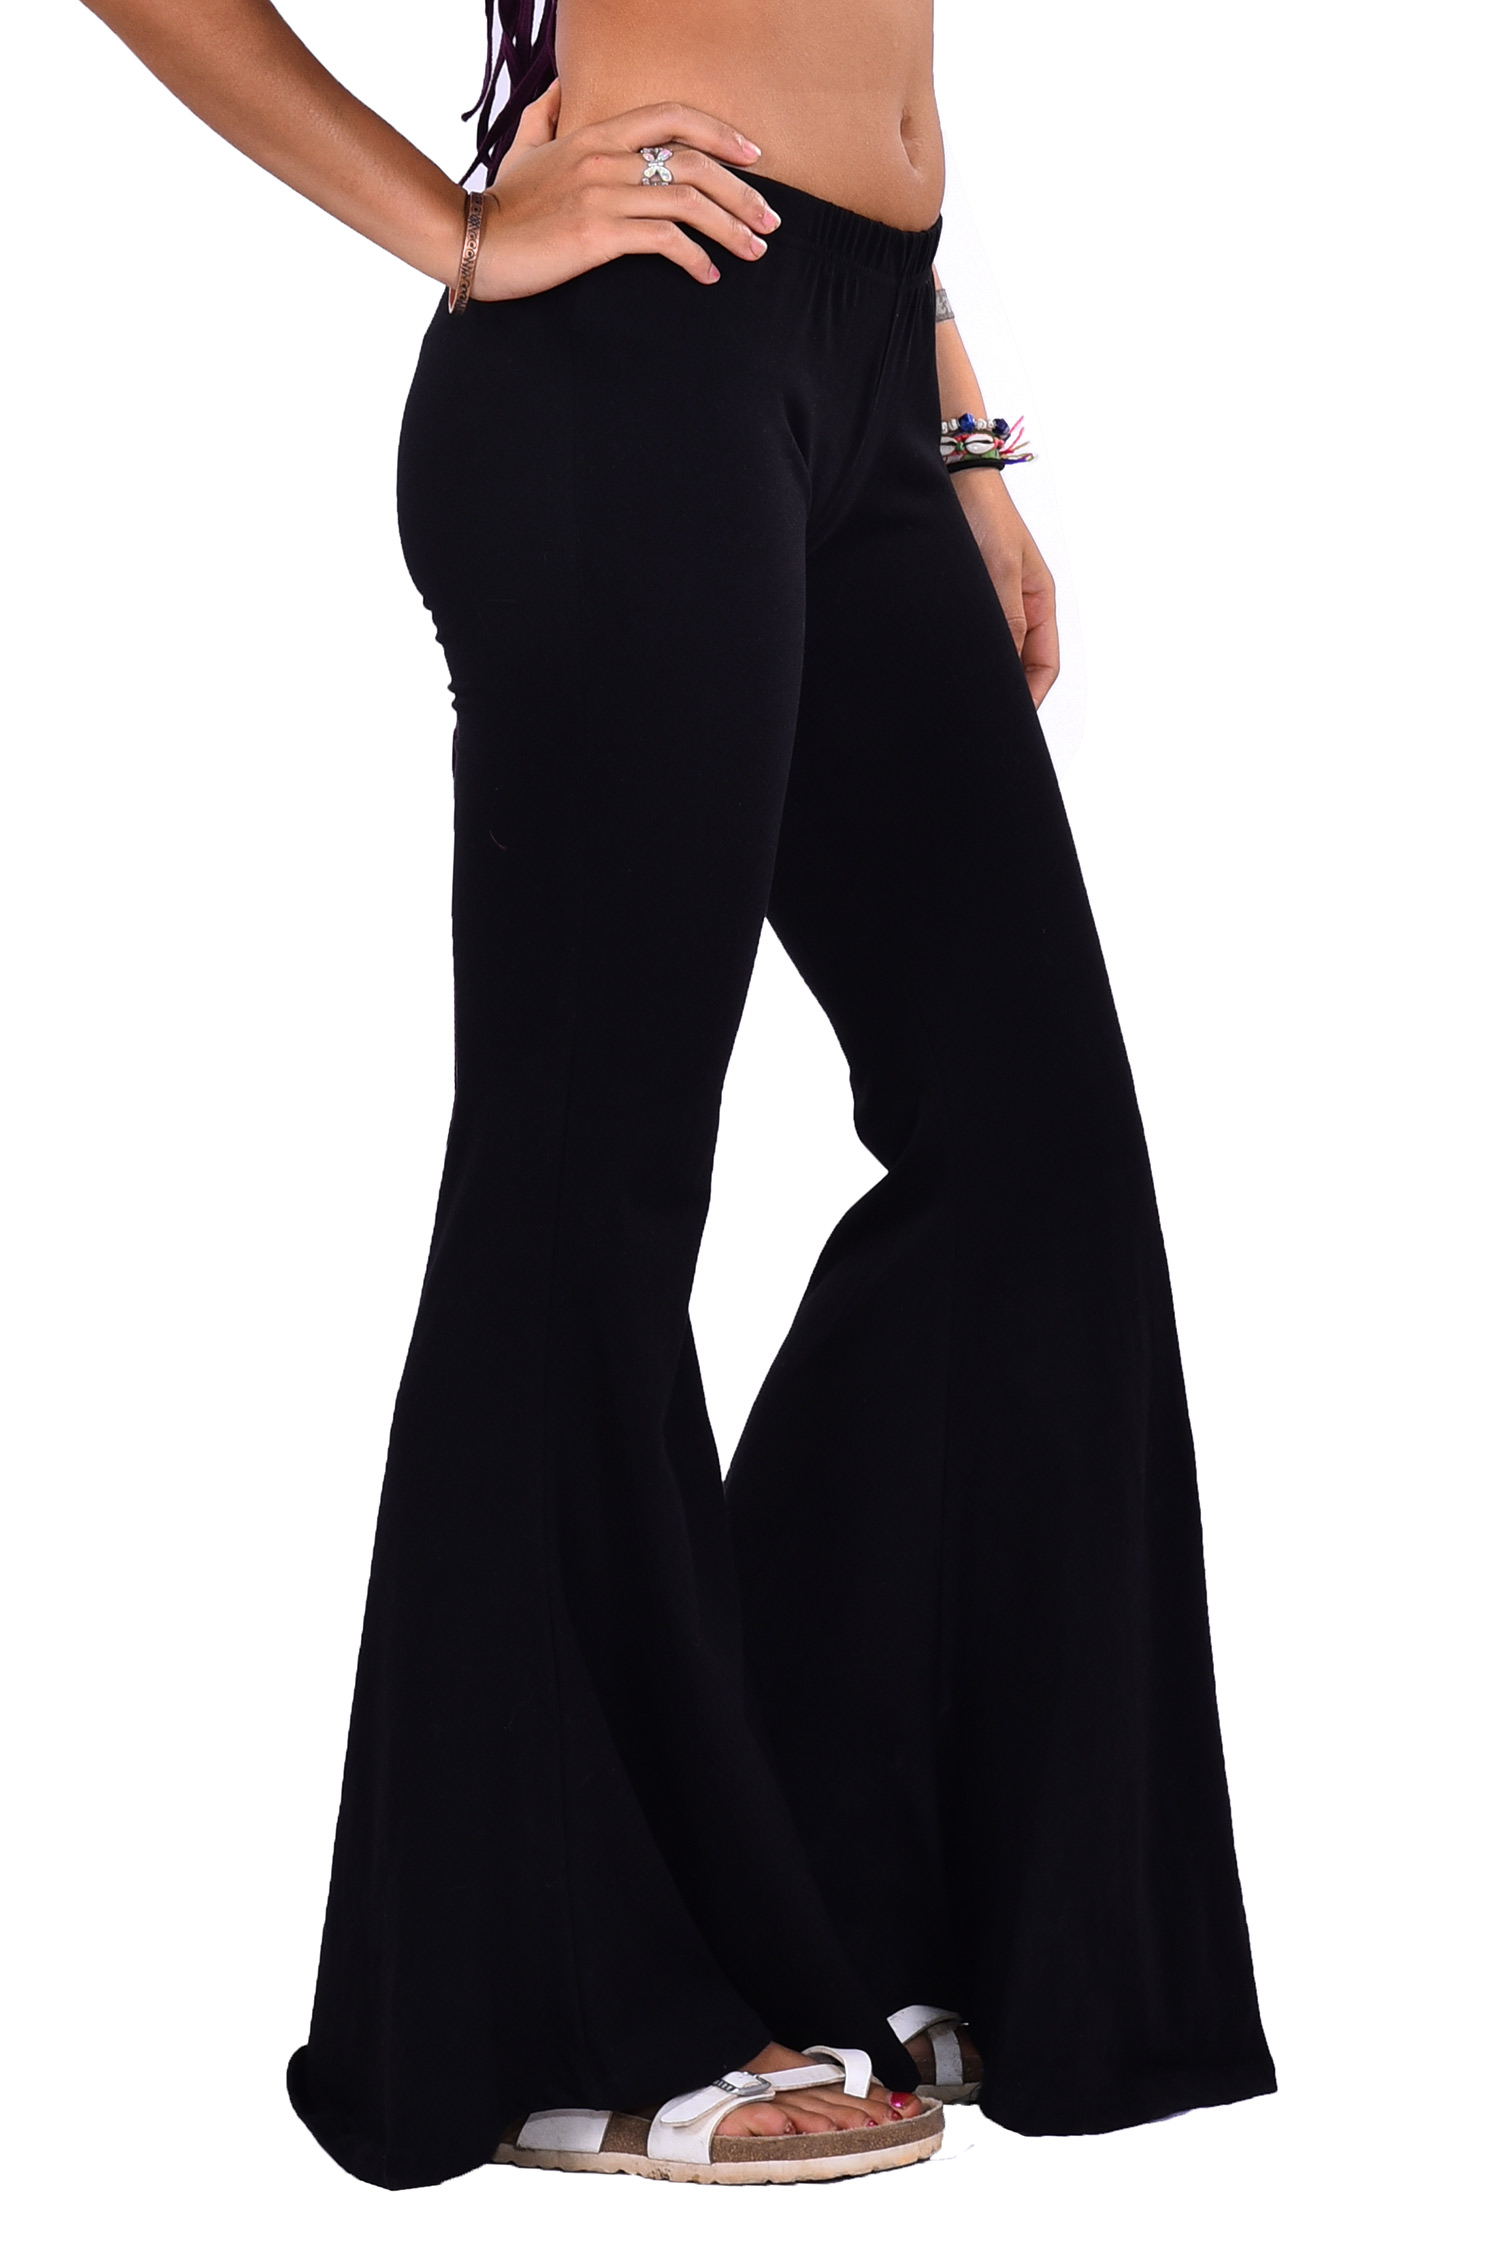 6b32e44992 Bell Bottoms Boho Trousers